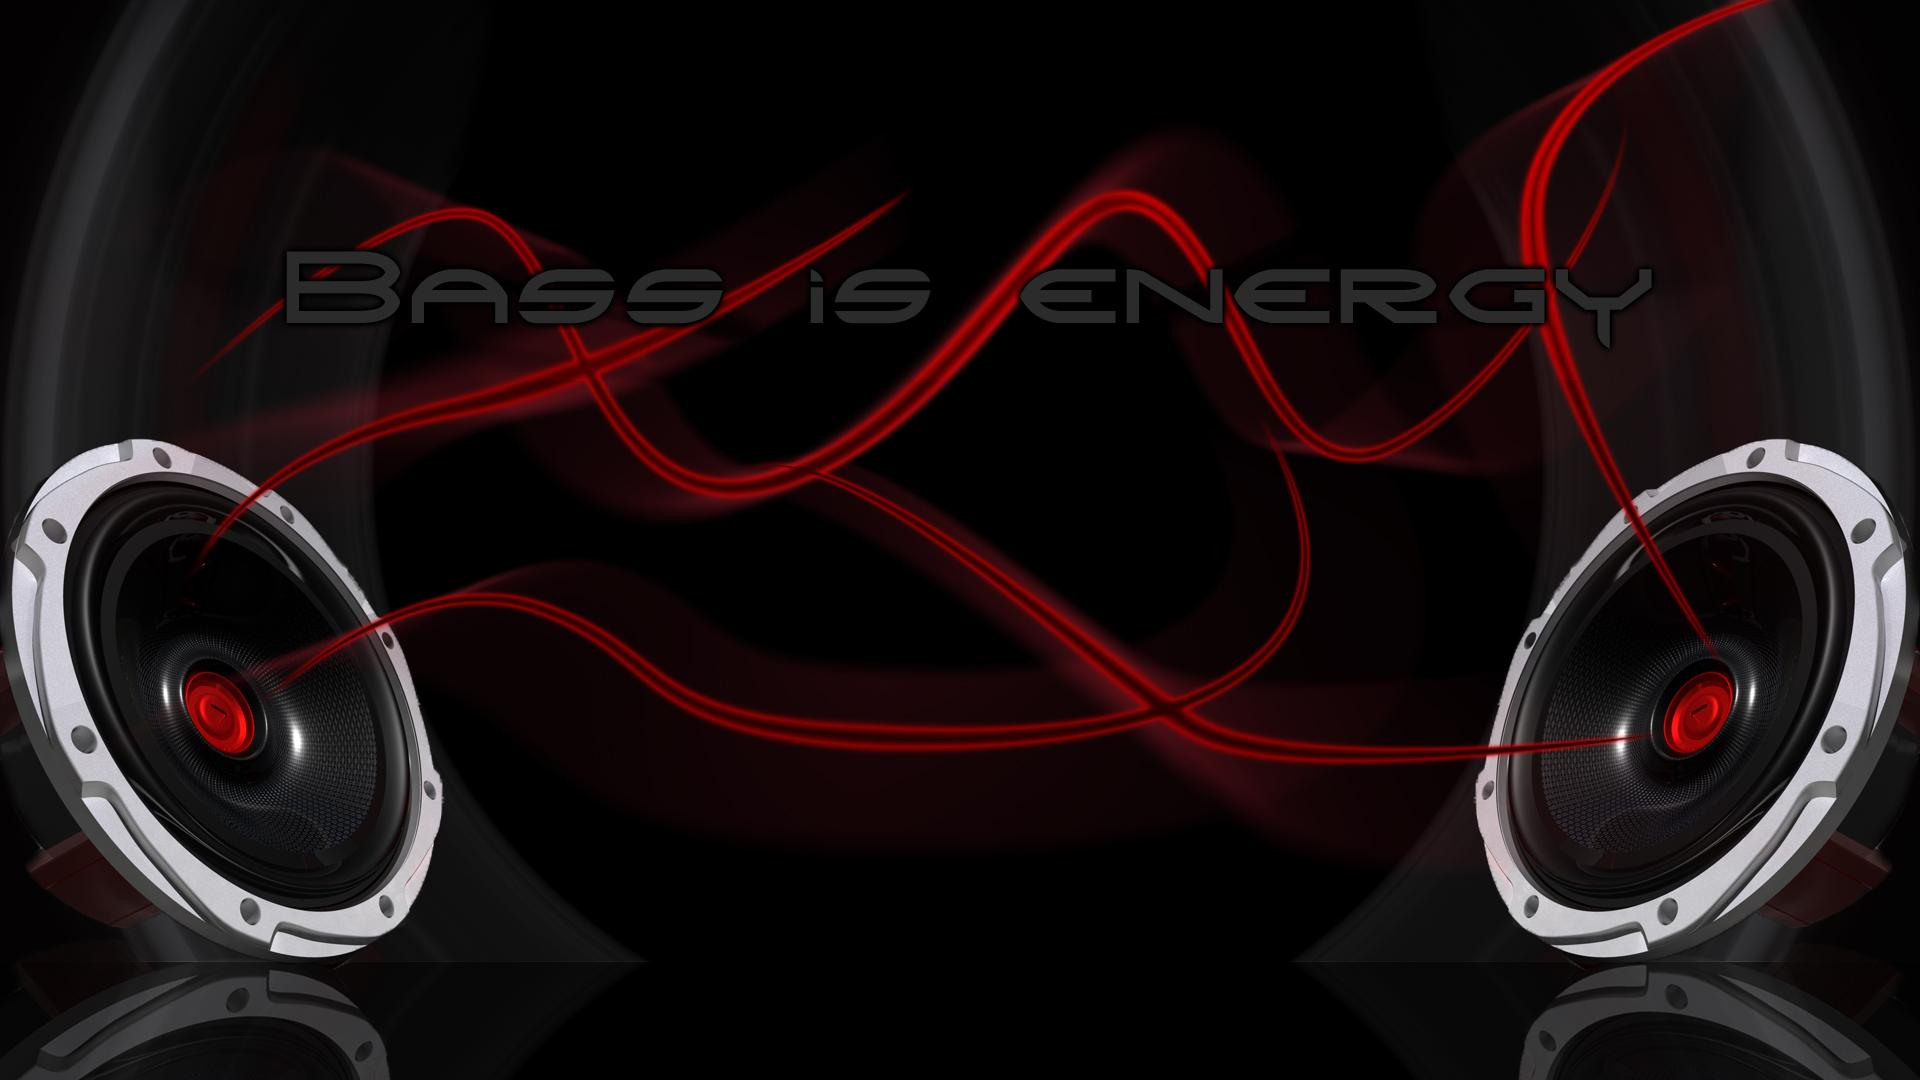 Обои Energy (Bass is energy) 1920x1080